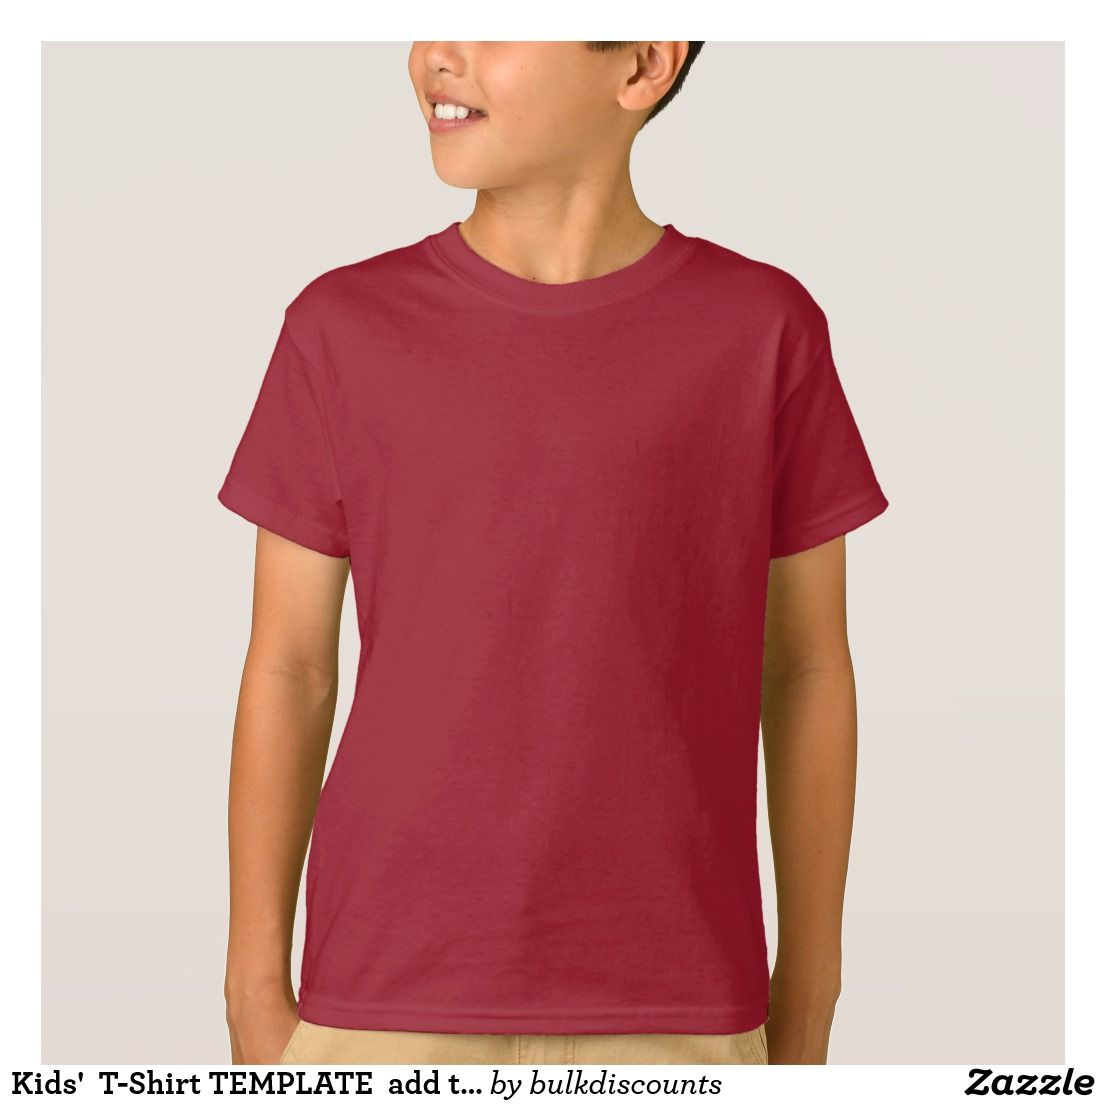 Kids\' T-Shirt TEMPLATE add text quote image FUN | 101 Zazzle PRO ...